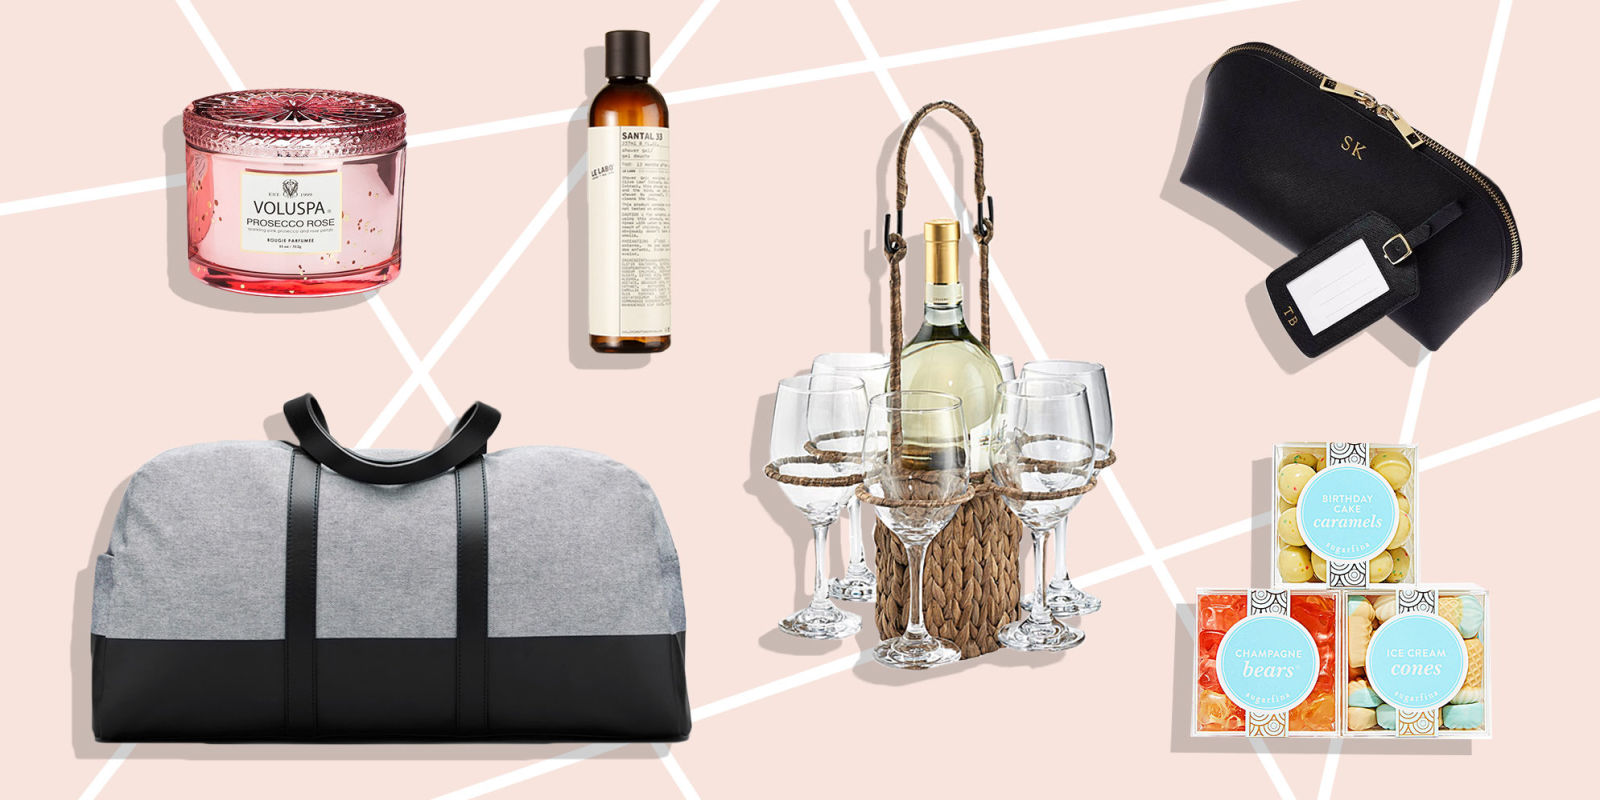 15 Best 30th Birthday Gifts For Women In 2018